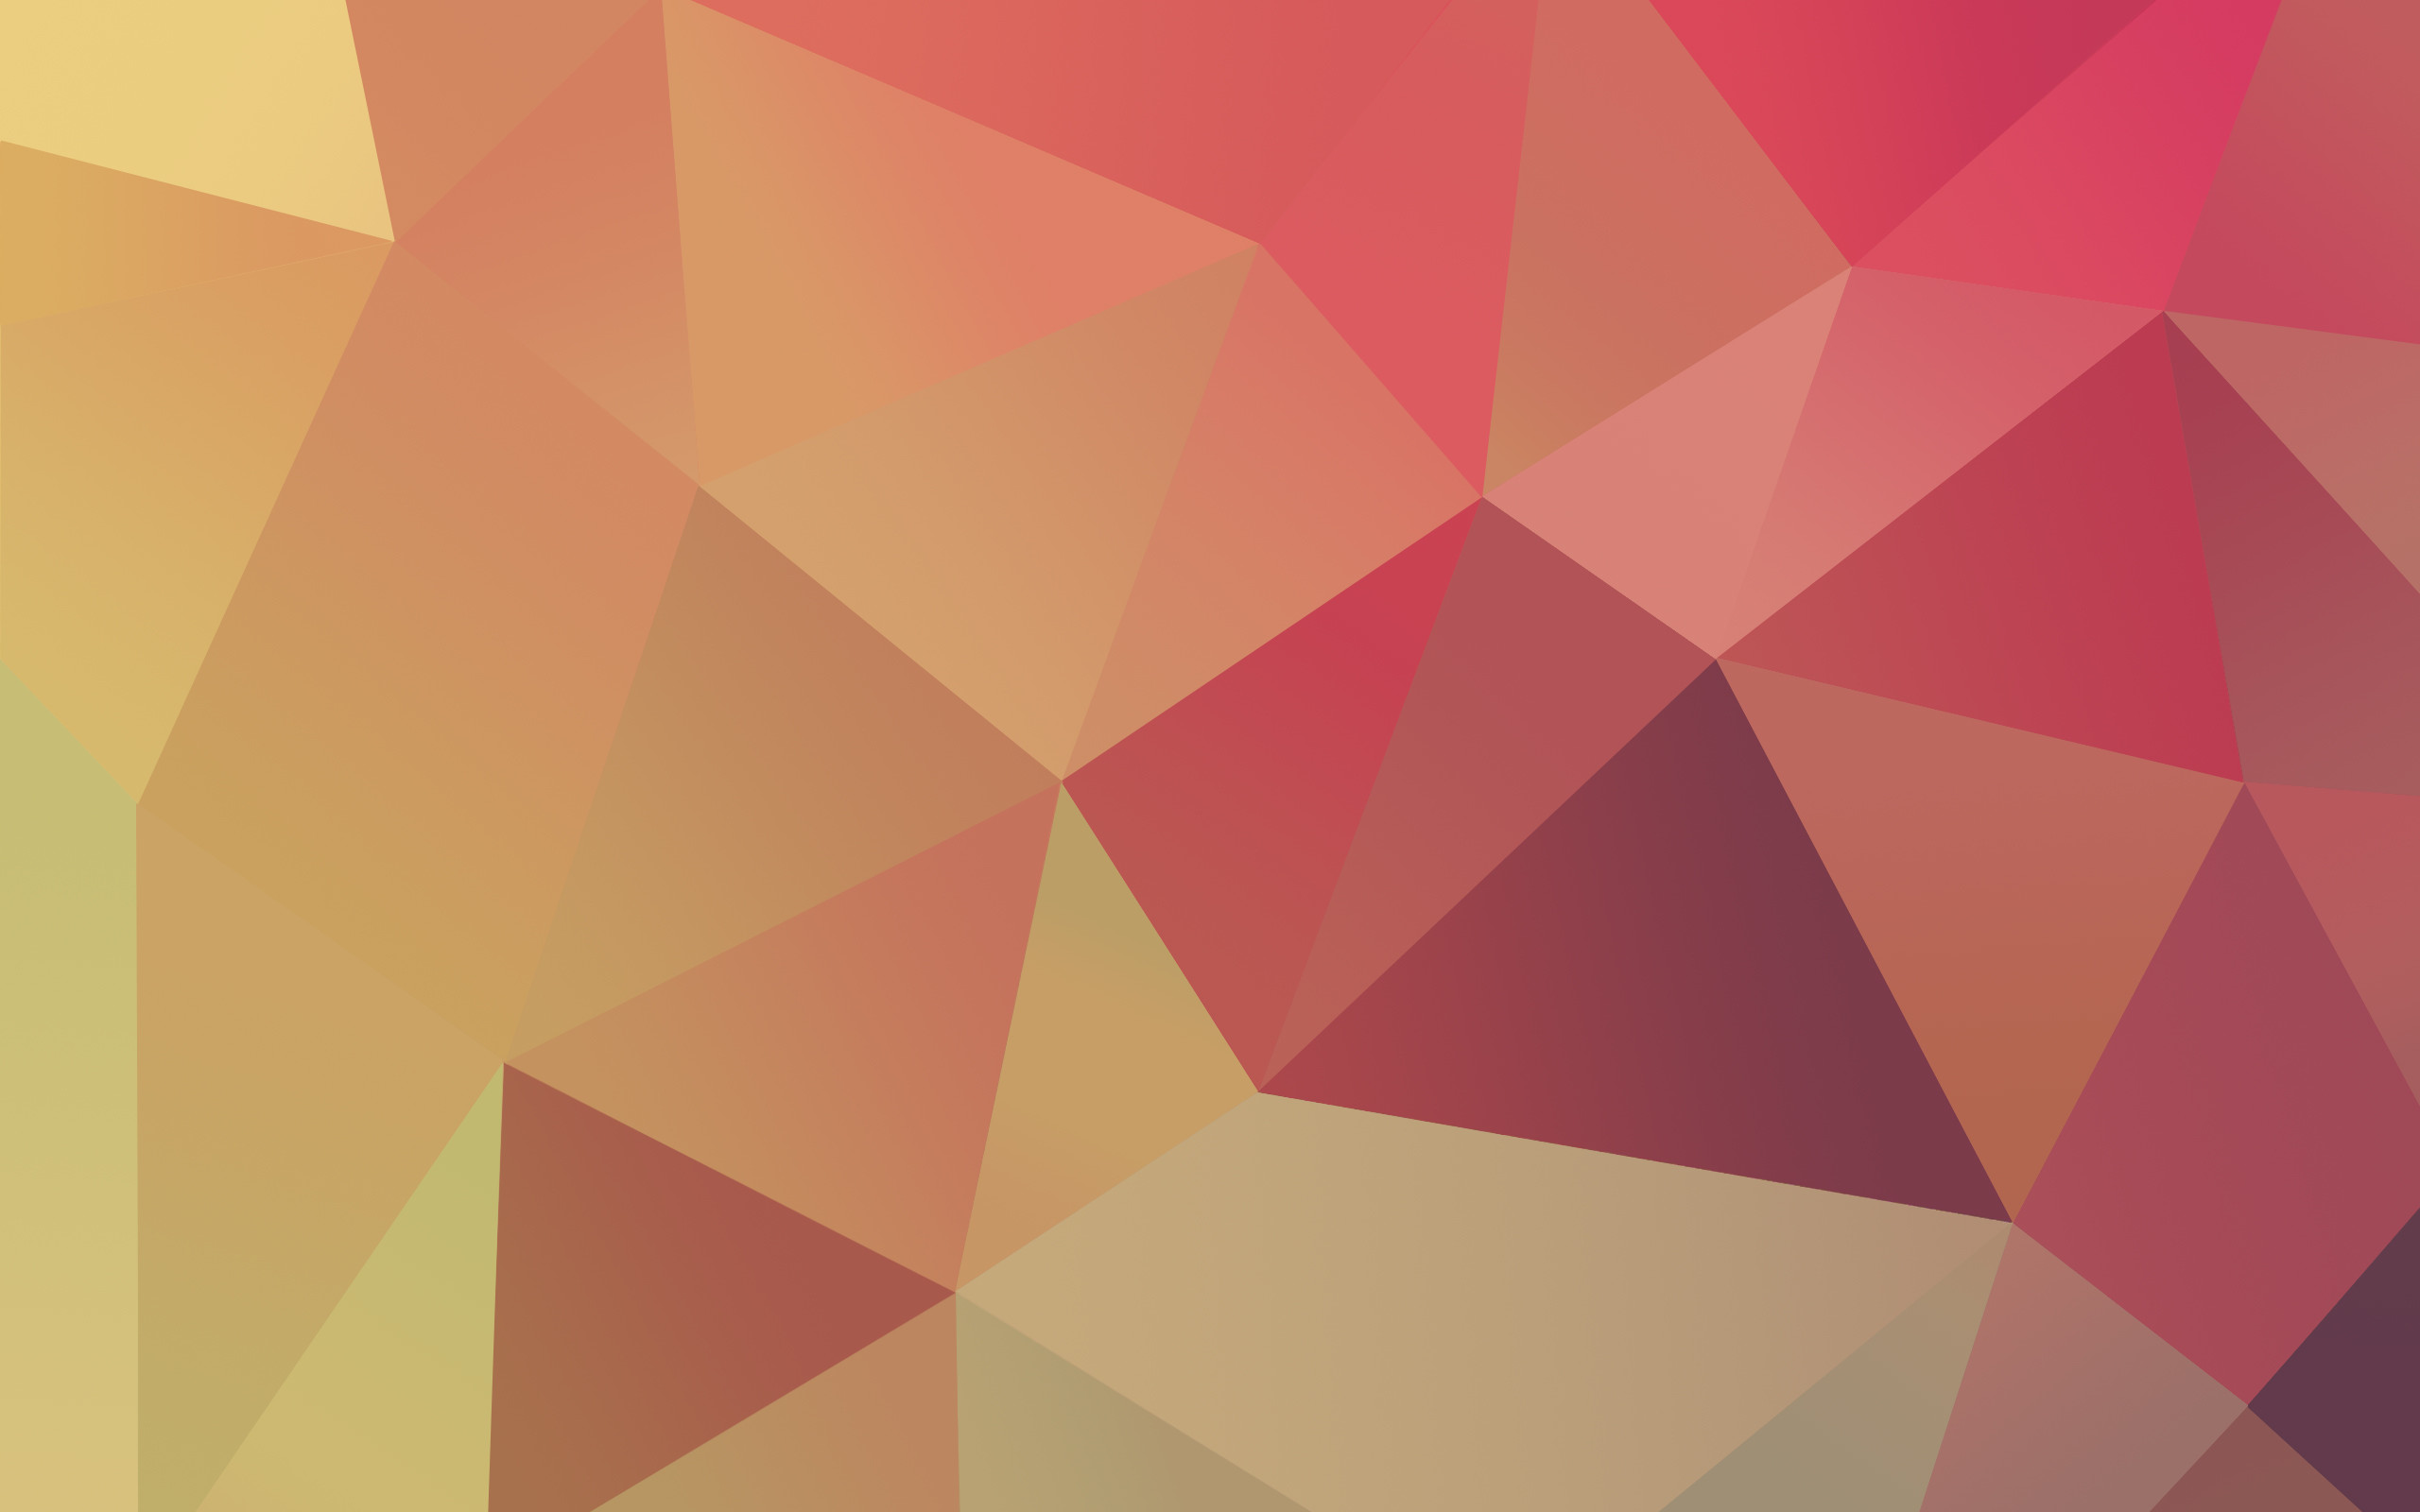 Jelly Bean Android Nexus 7 abstract wallpaper